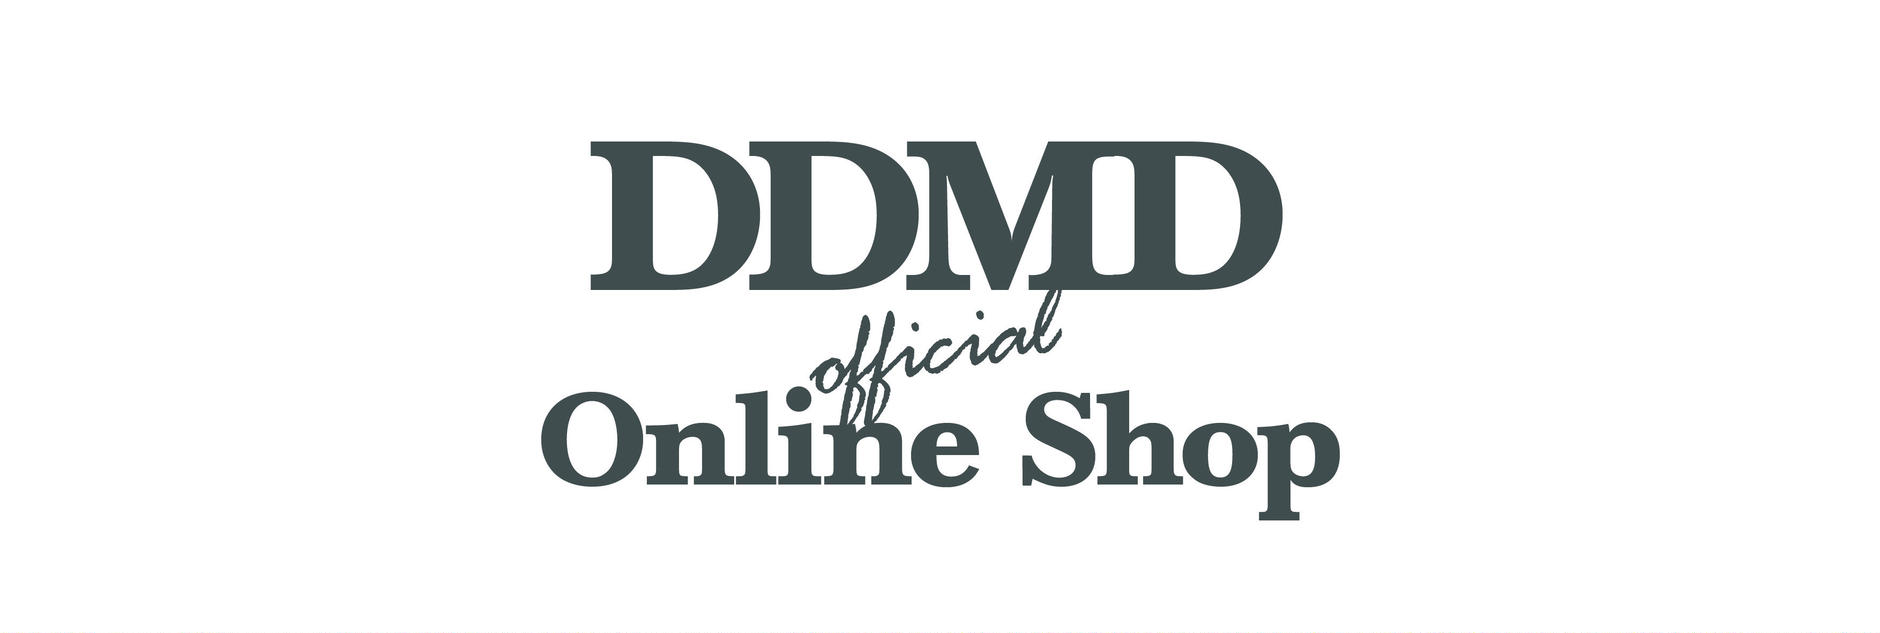 DDMD official online shop